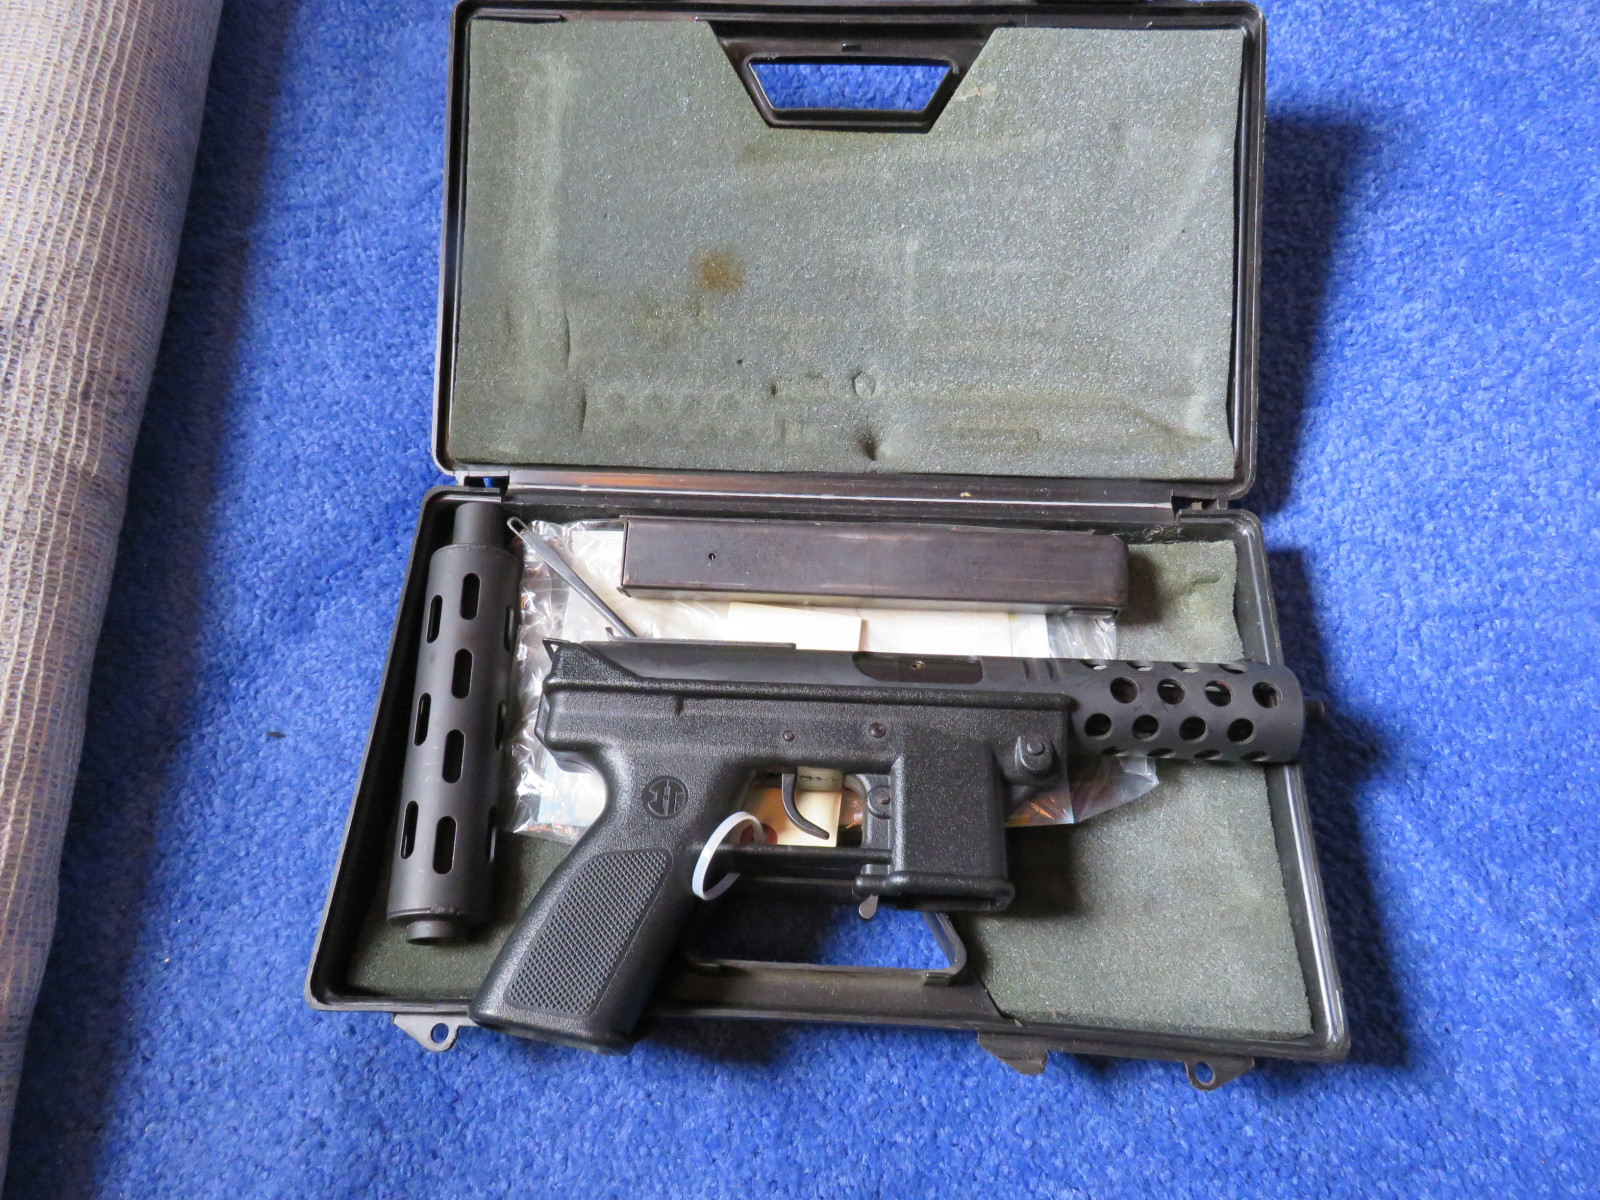 Intratec TEC-DC9 9mm Luger - Image 2